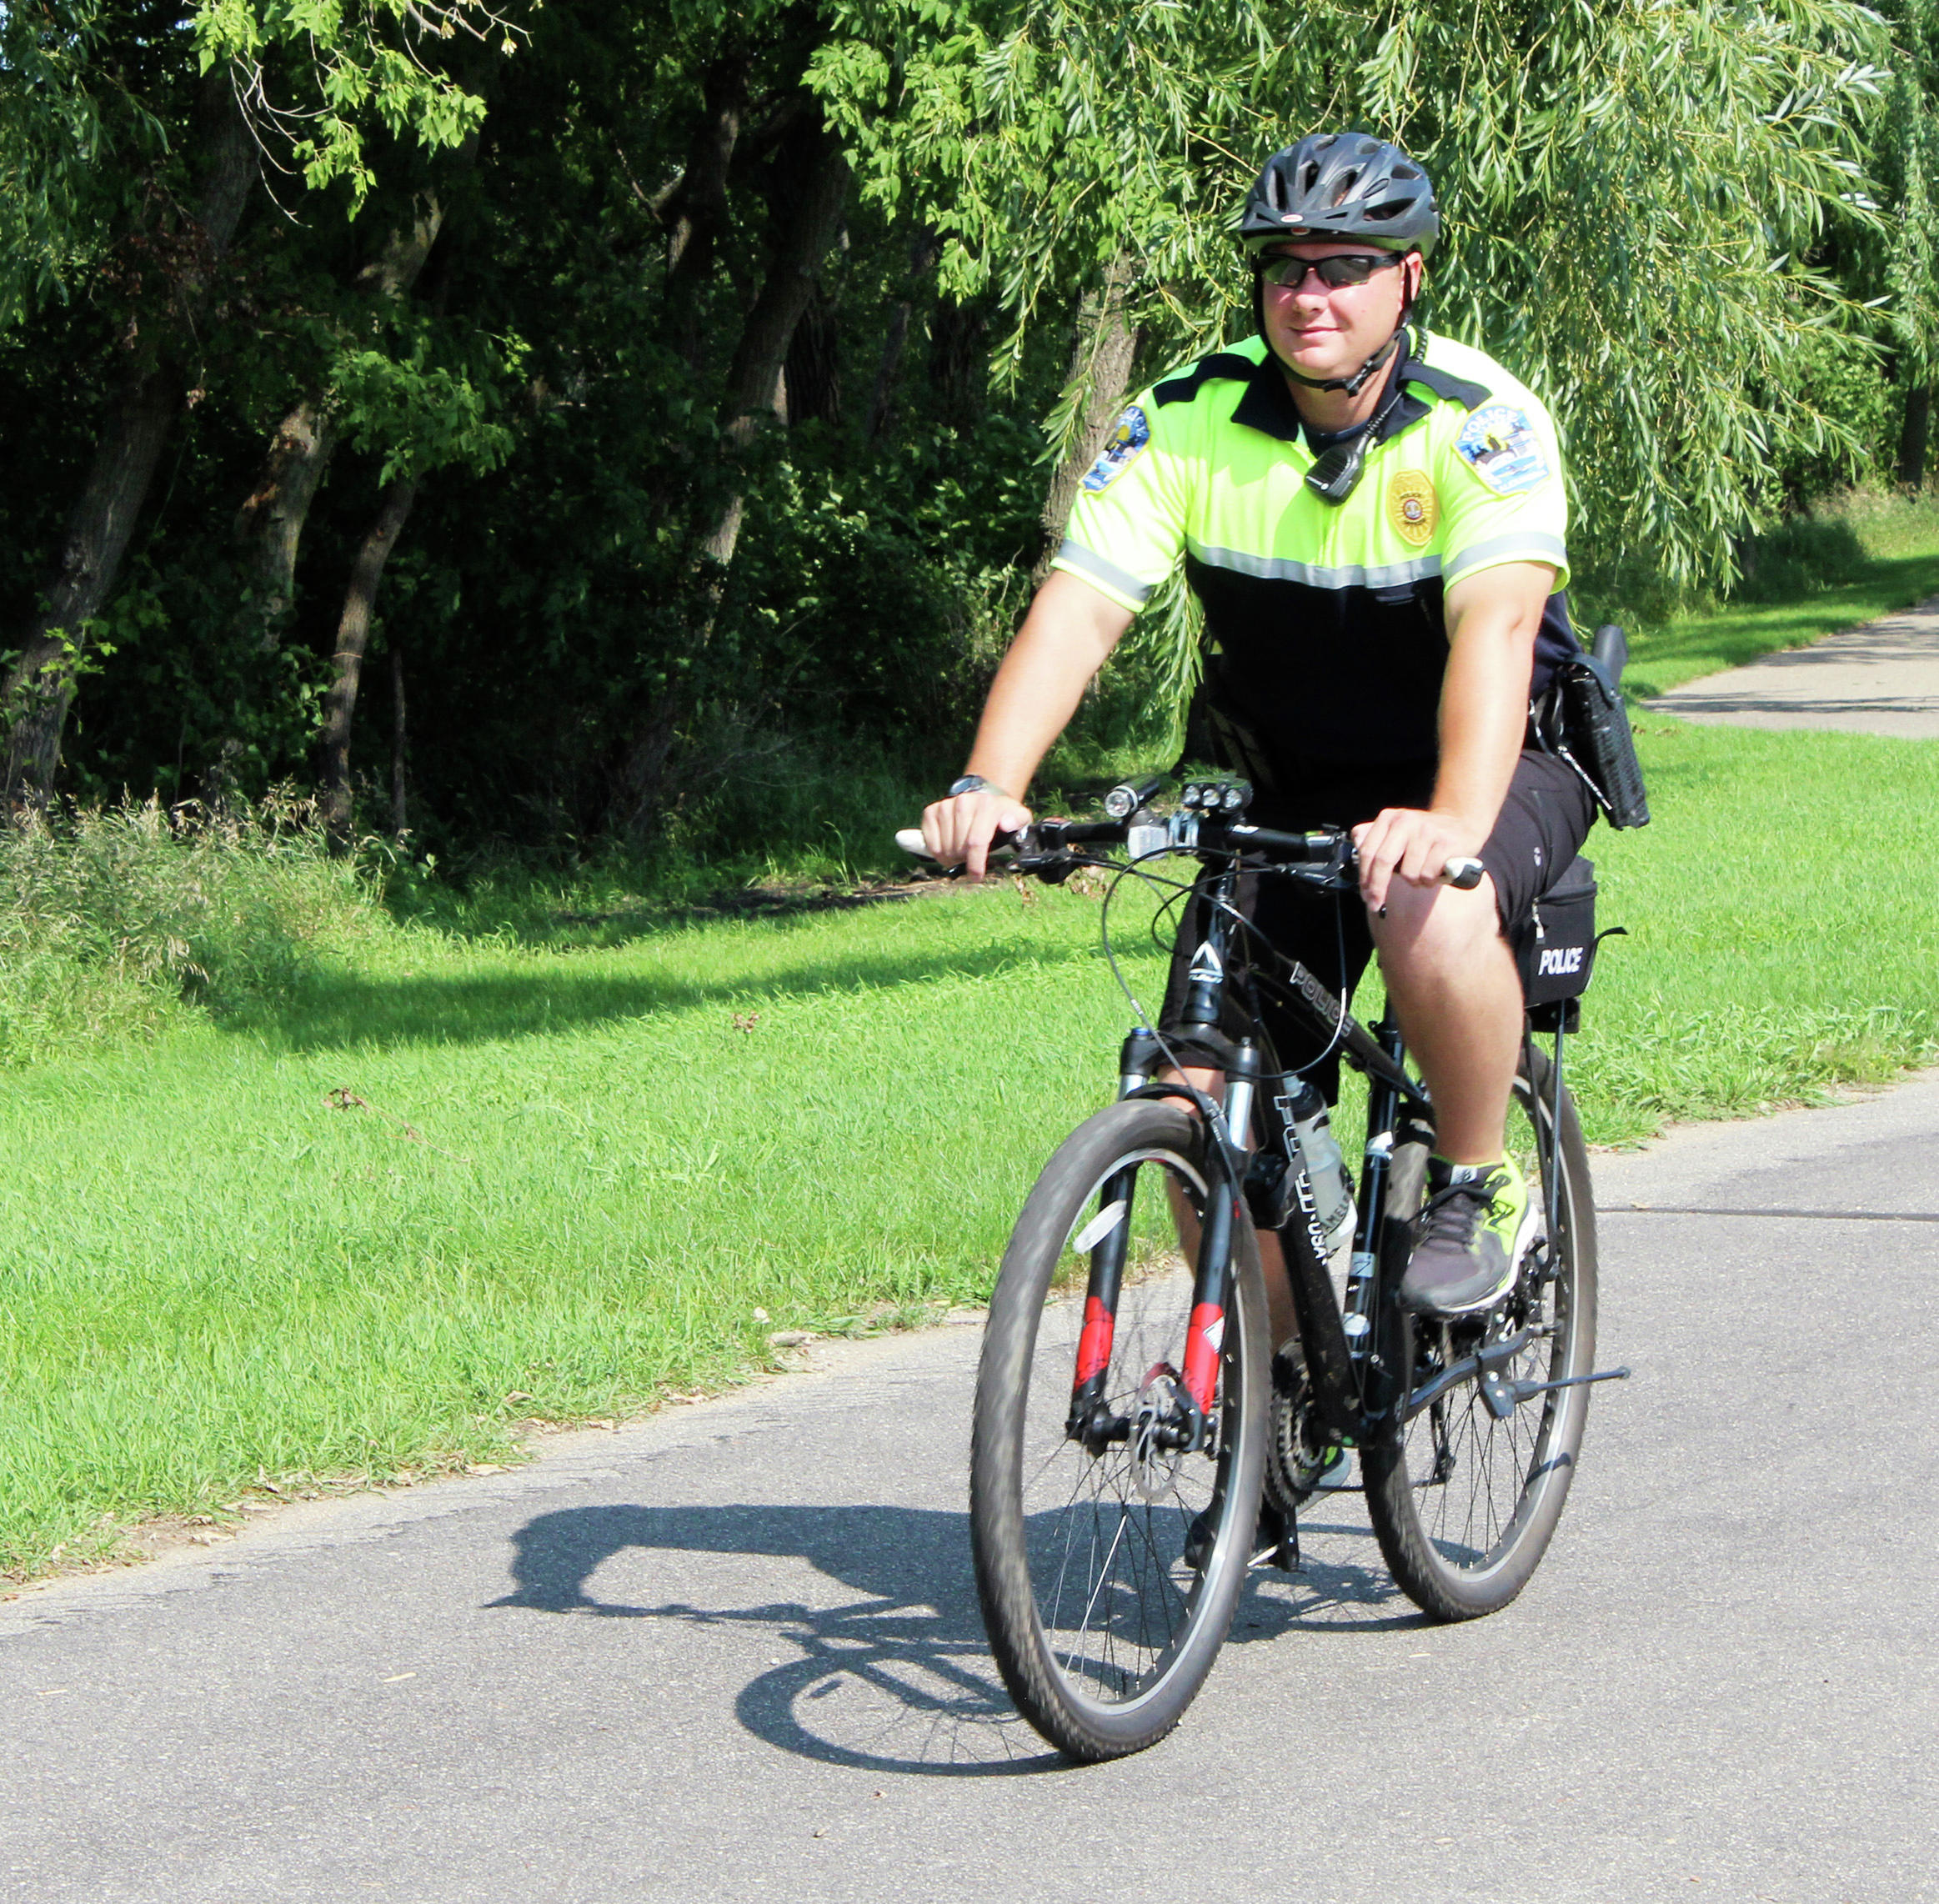 Police with pedals promote safety on bike trail